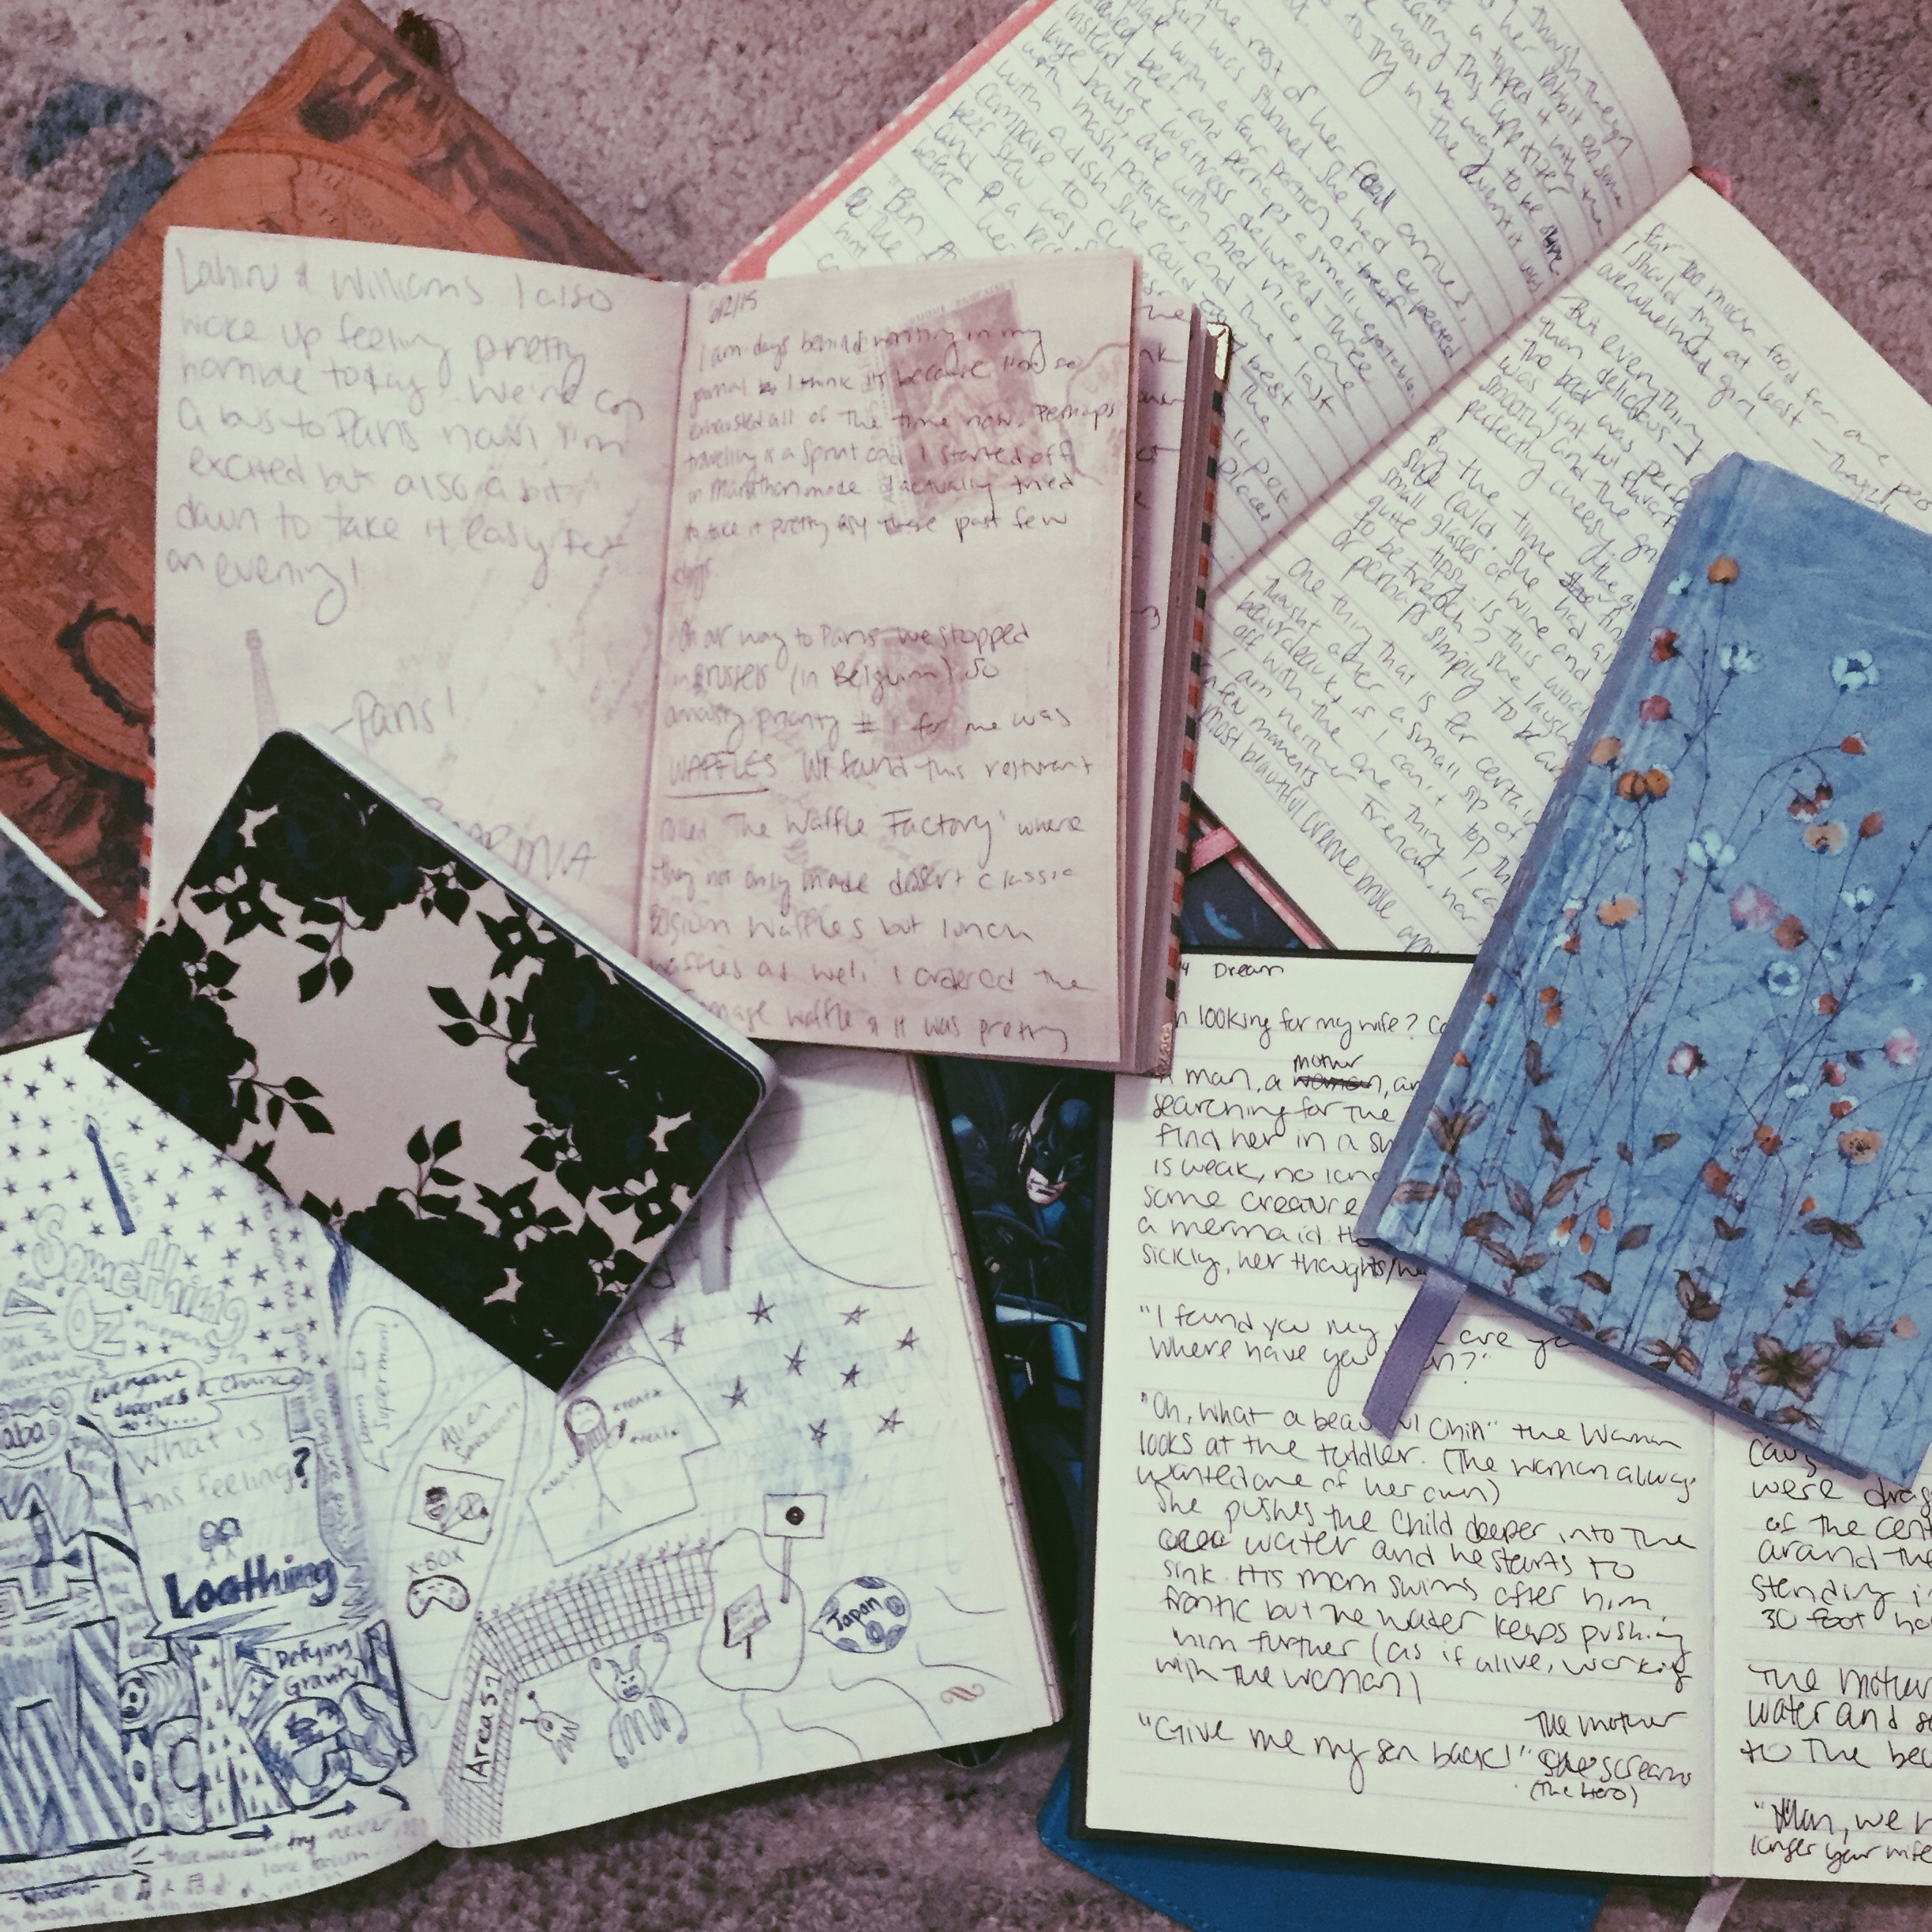 Just a handful of the journals I have lying around.